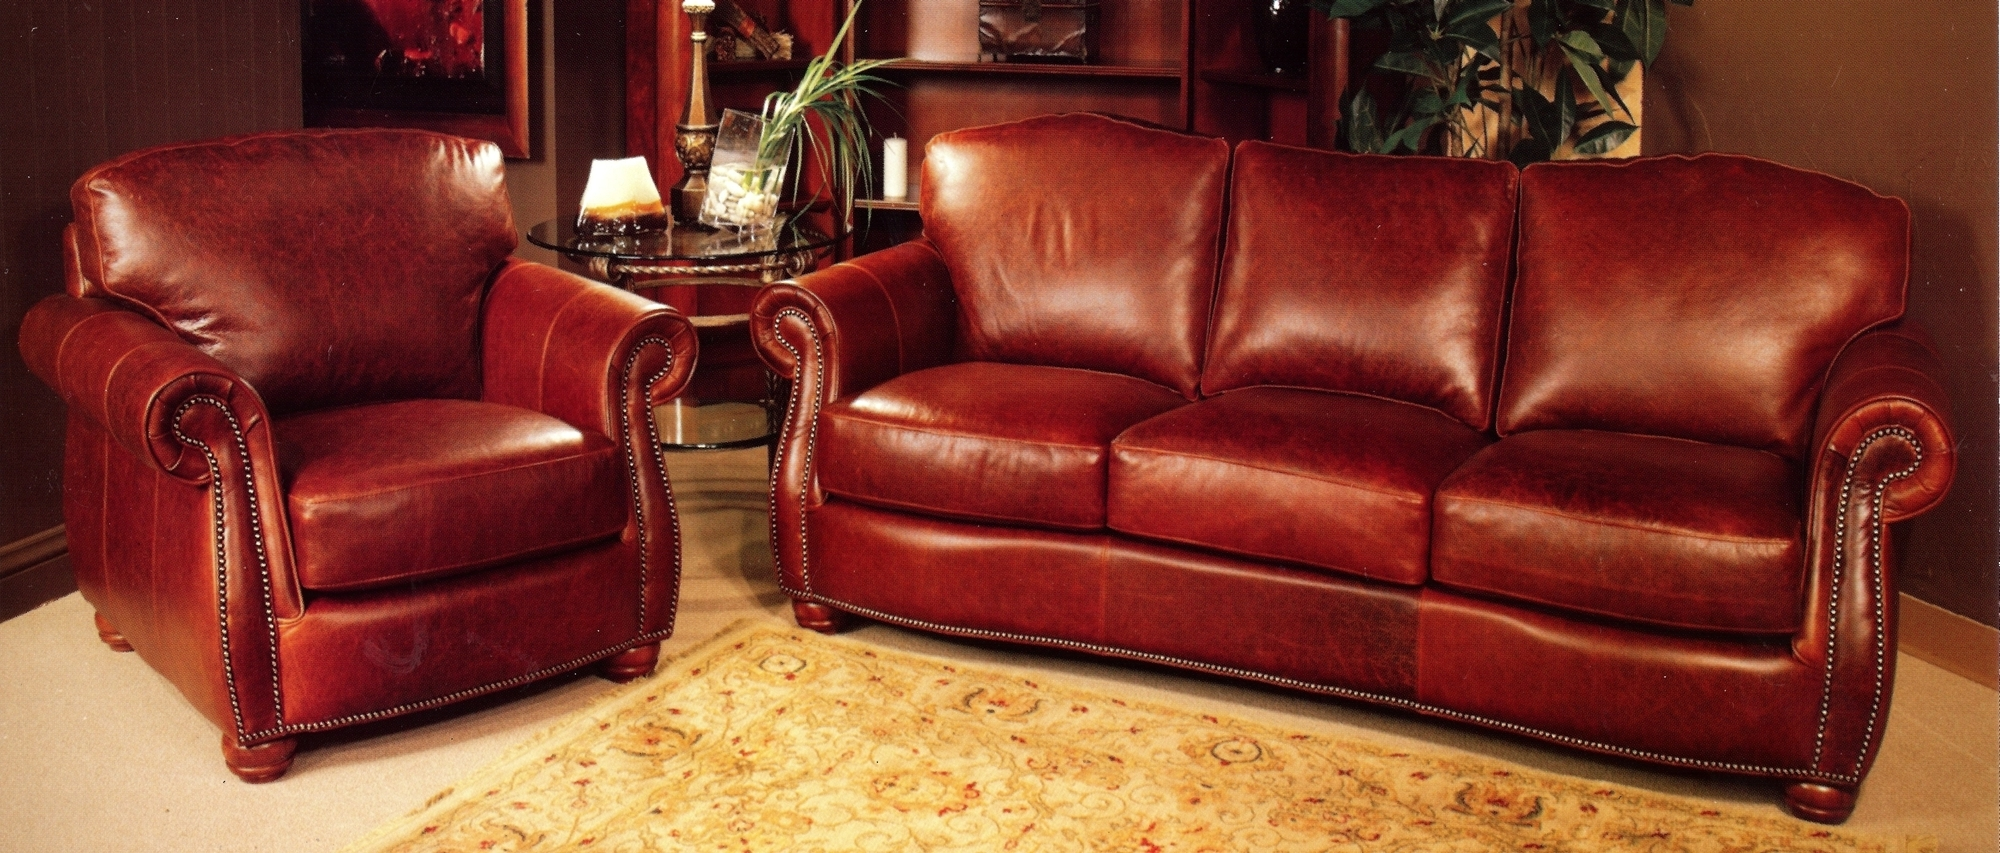 Red Leather Couches Throughout Well Known Rustic Red Leather Sofa And Rustic Red Leather Chair With Rustic (View 20 of 20)